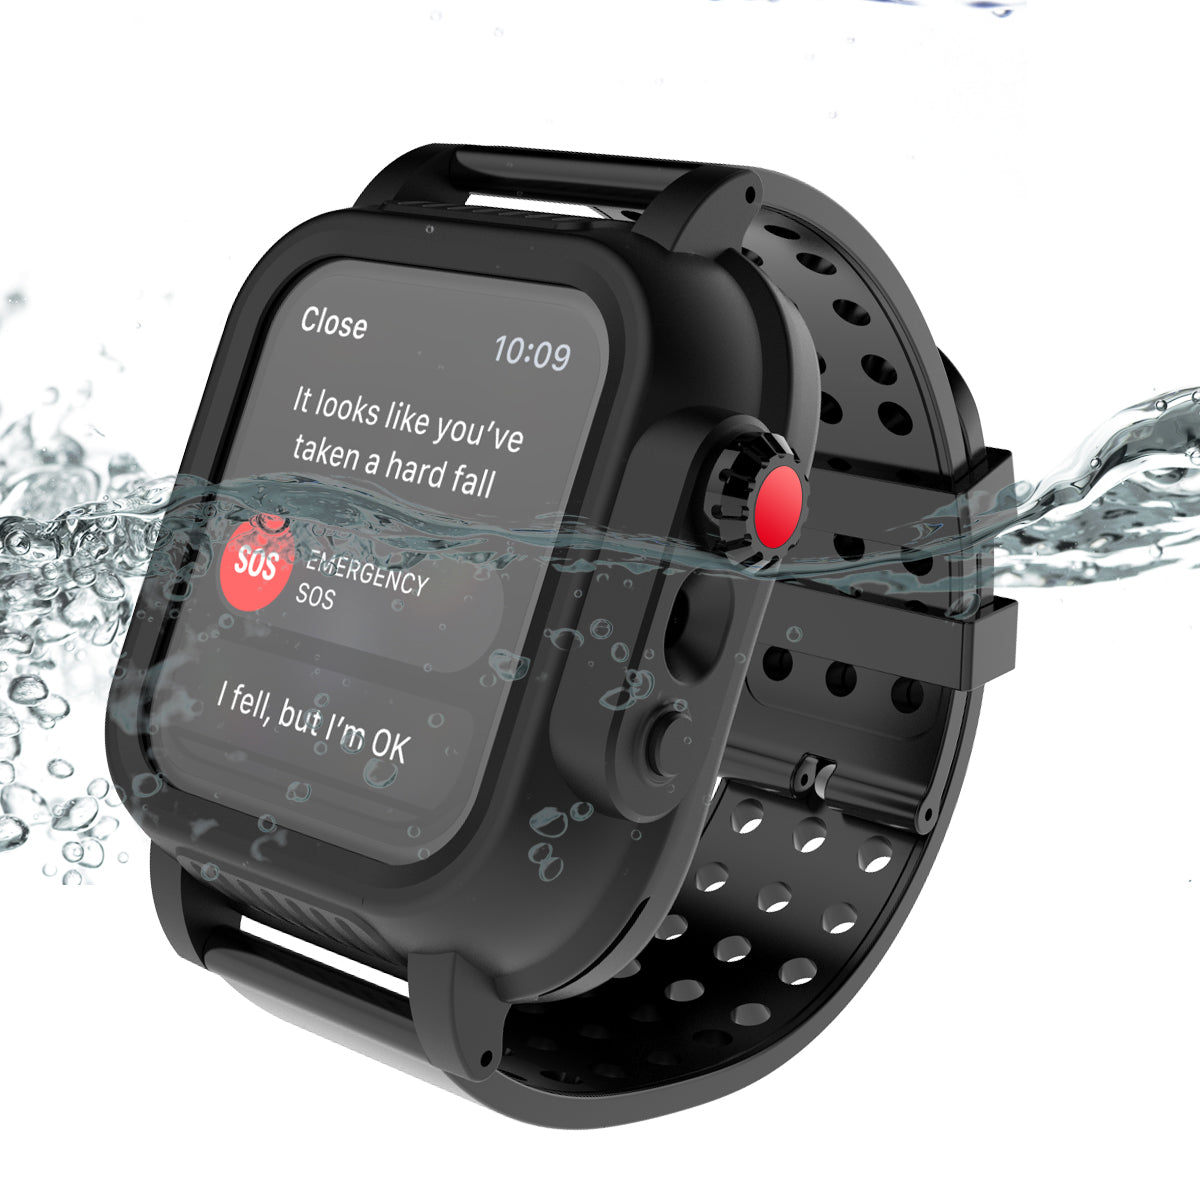 huge discount 9bc5a 483b8 iWatch Series 3 Waterproof Case Rugged Protective Cover 42mm with ...